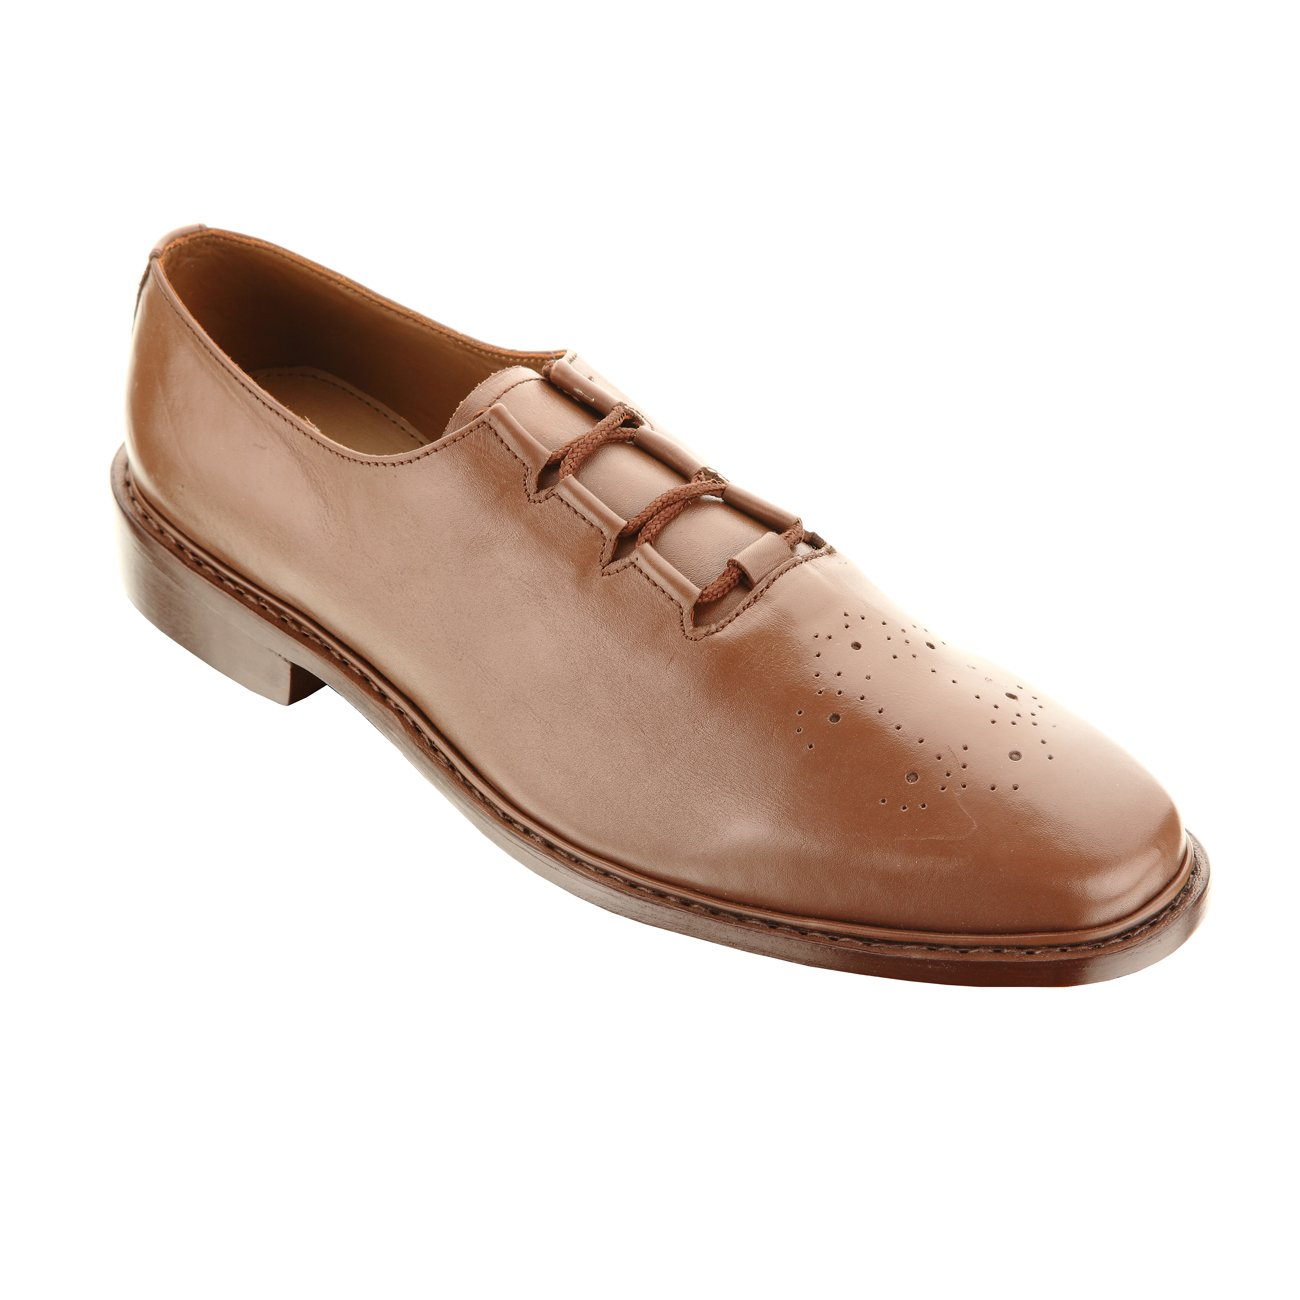 Handmade Damen Frost 'The Ceo' Men's Wing Tip Leather Dress Oxfords Shoes, Color Brown, Size US12